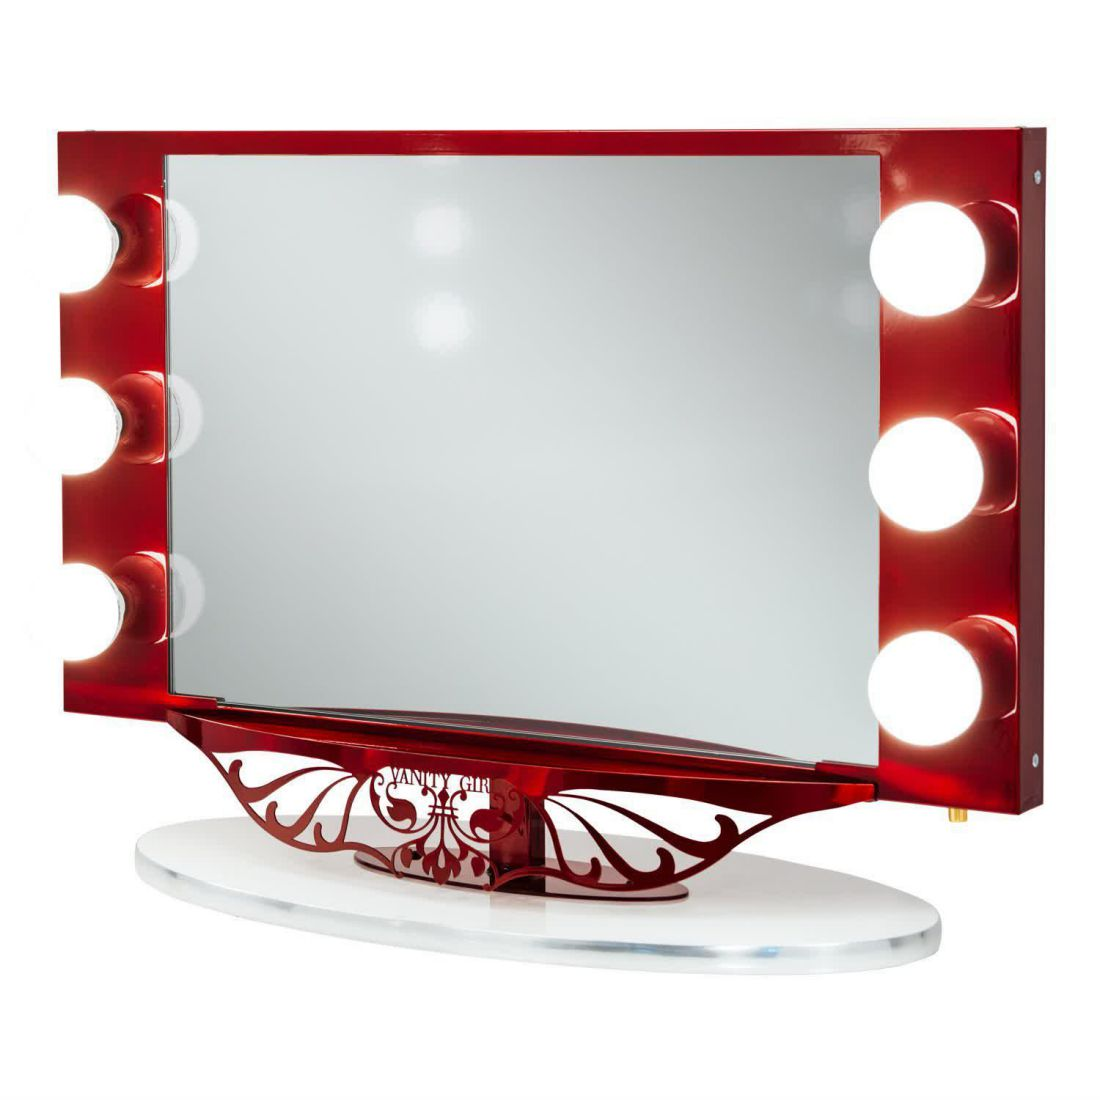 Vanity Girl Hollywood Starlet Lighted Vanity Mirror Red